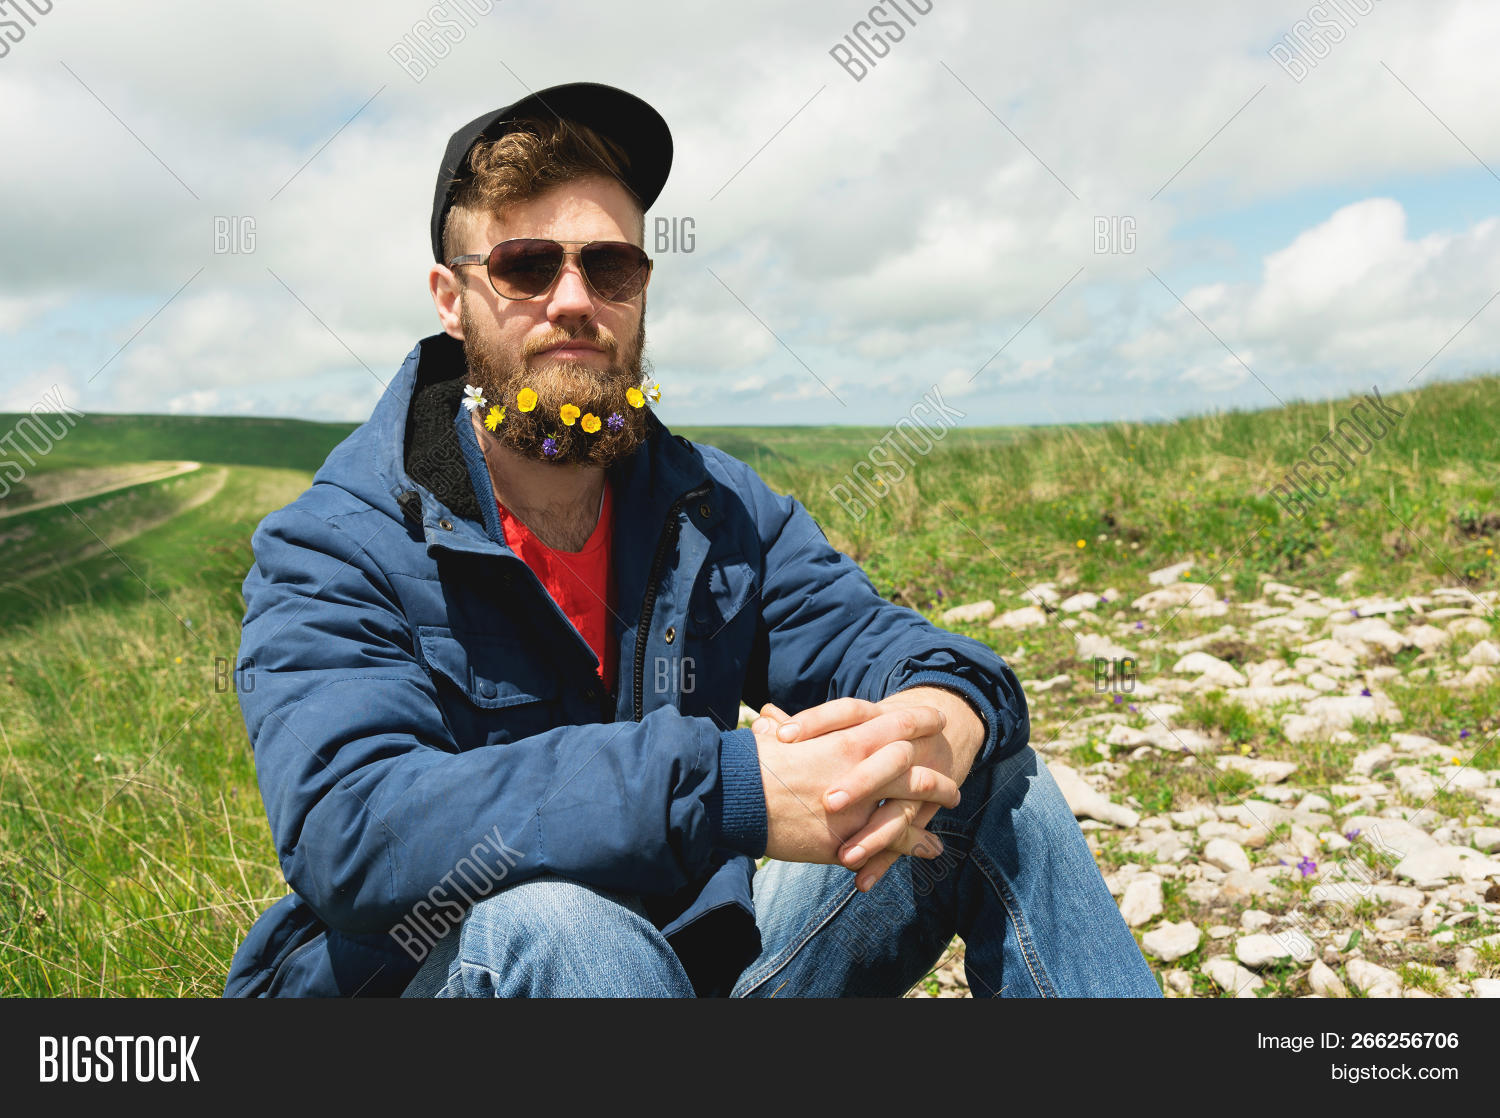 Portrait of a cheerful bearded man in sunglasses and a gray cap with wildflowers in a beard. Soft brutality and good masculinity. Sits in a jacket on the grass in the outdoor